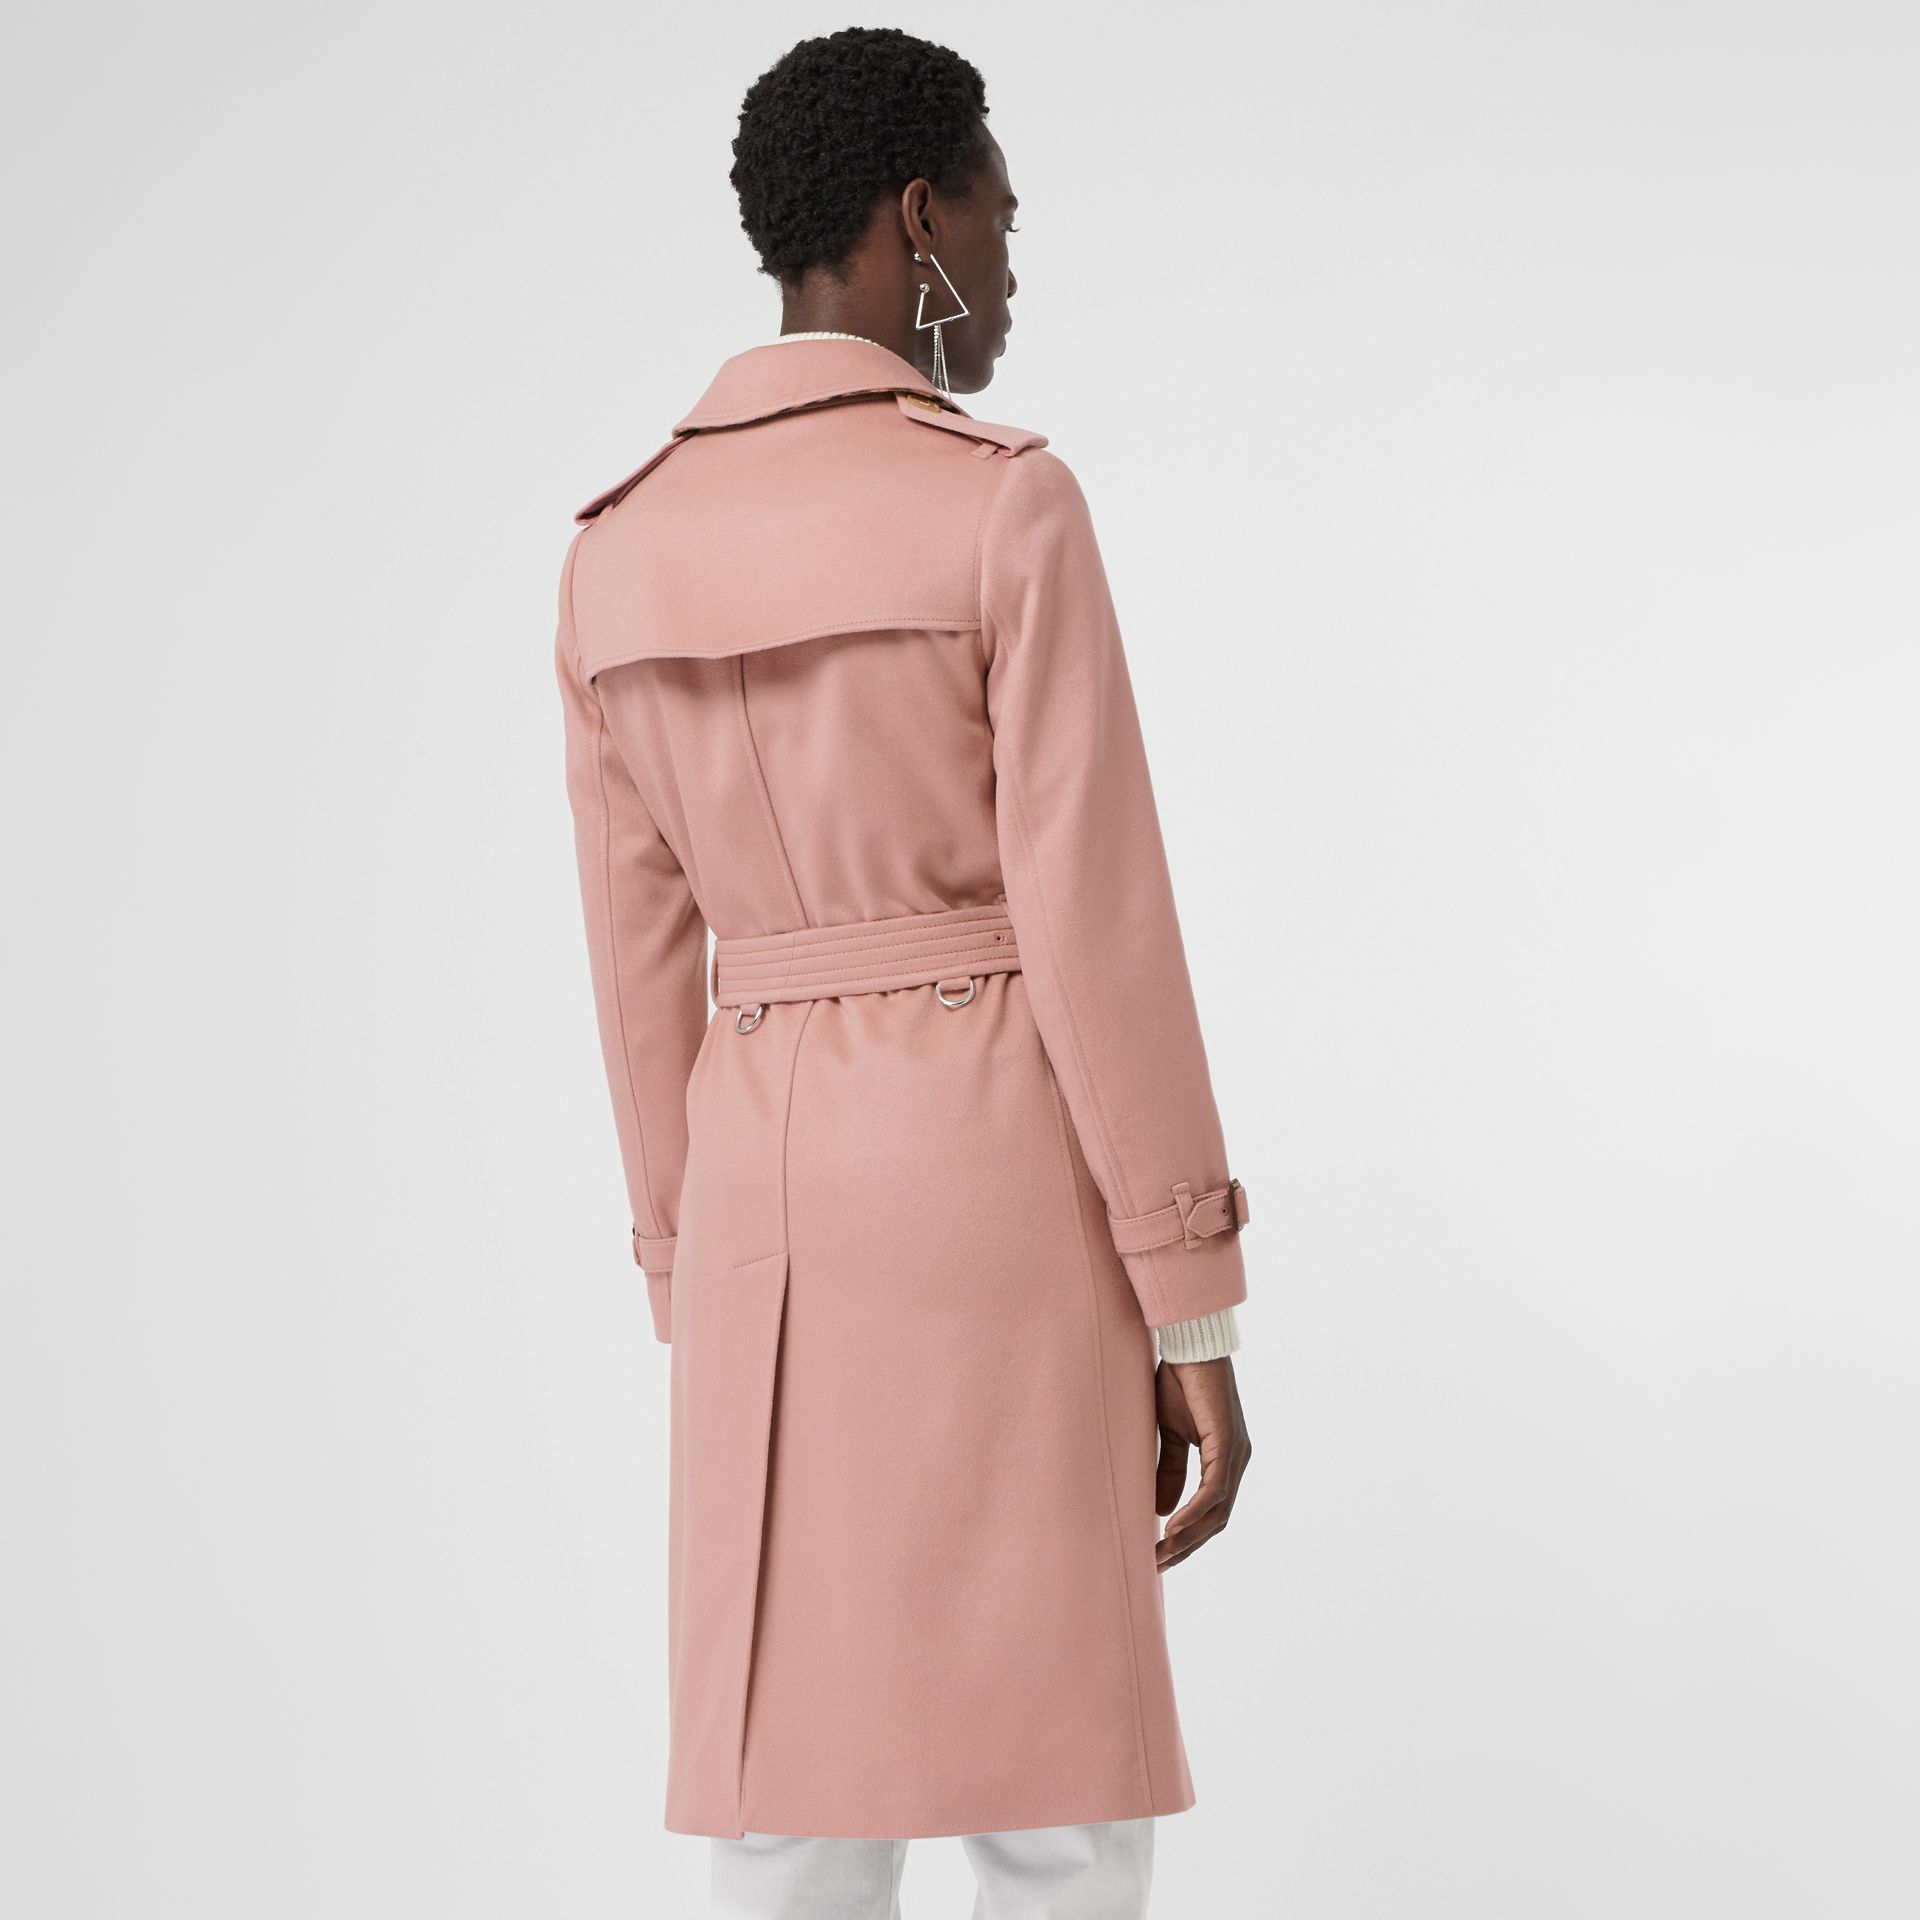 Cashmere Trench Coat in Chalk Pink - Women | Burberry - gallery image 2